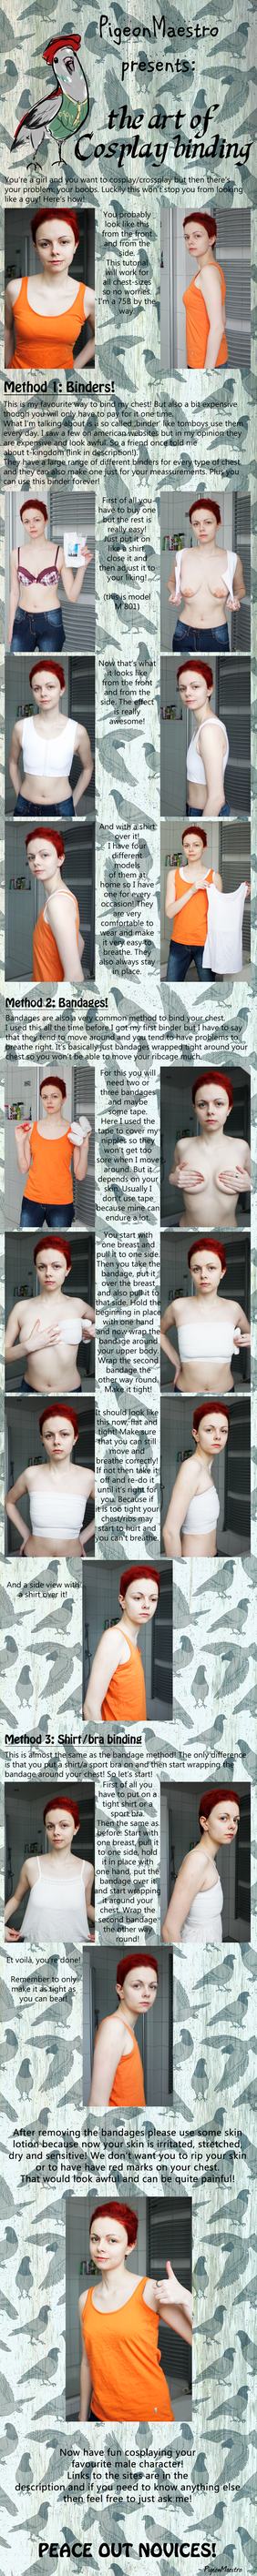 Cosplay Binding: How to bind your chest by PigeonMaestro